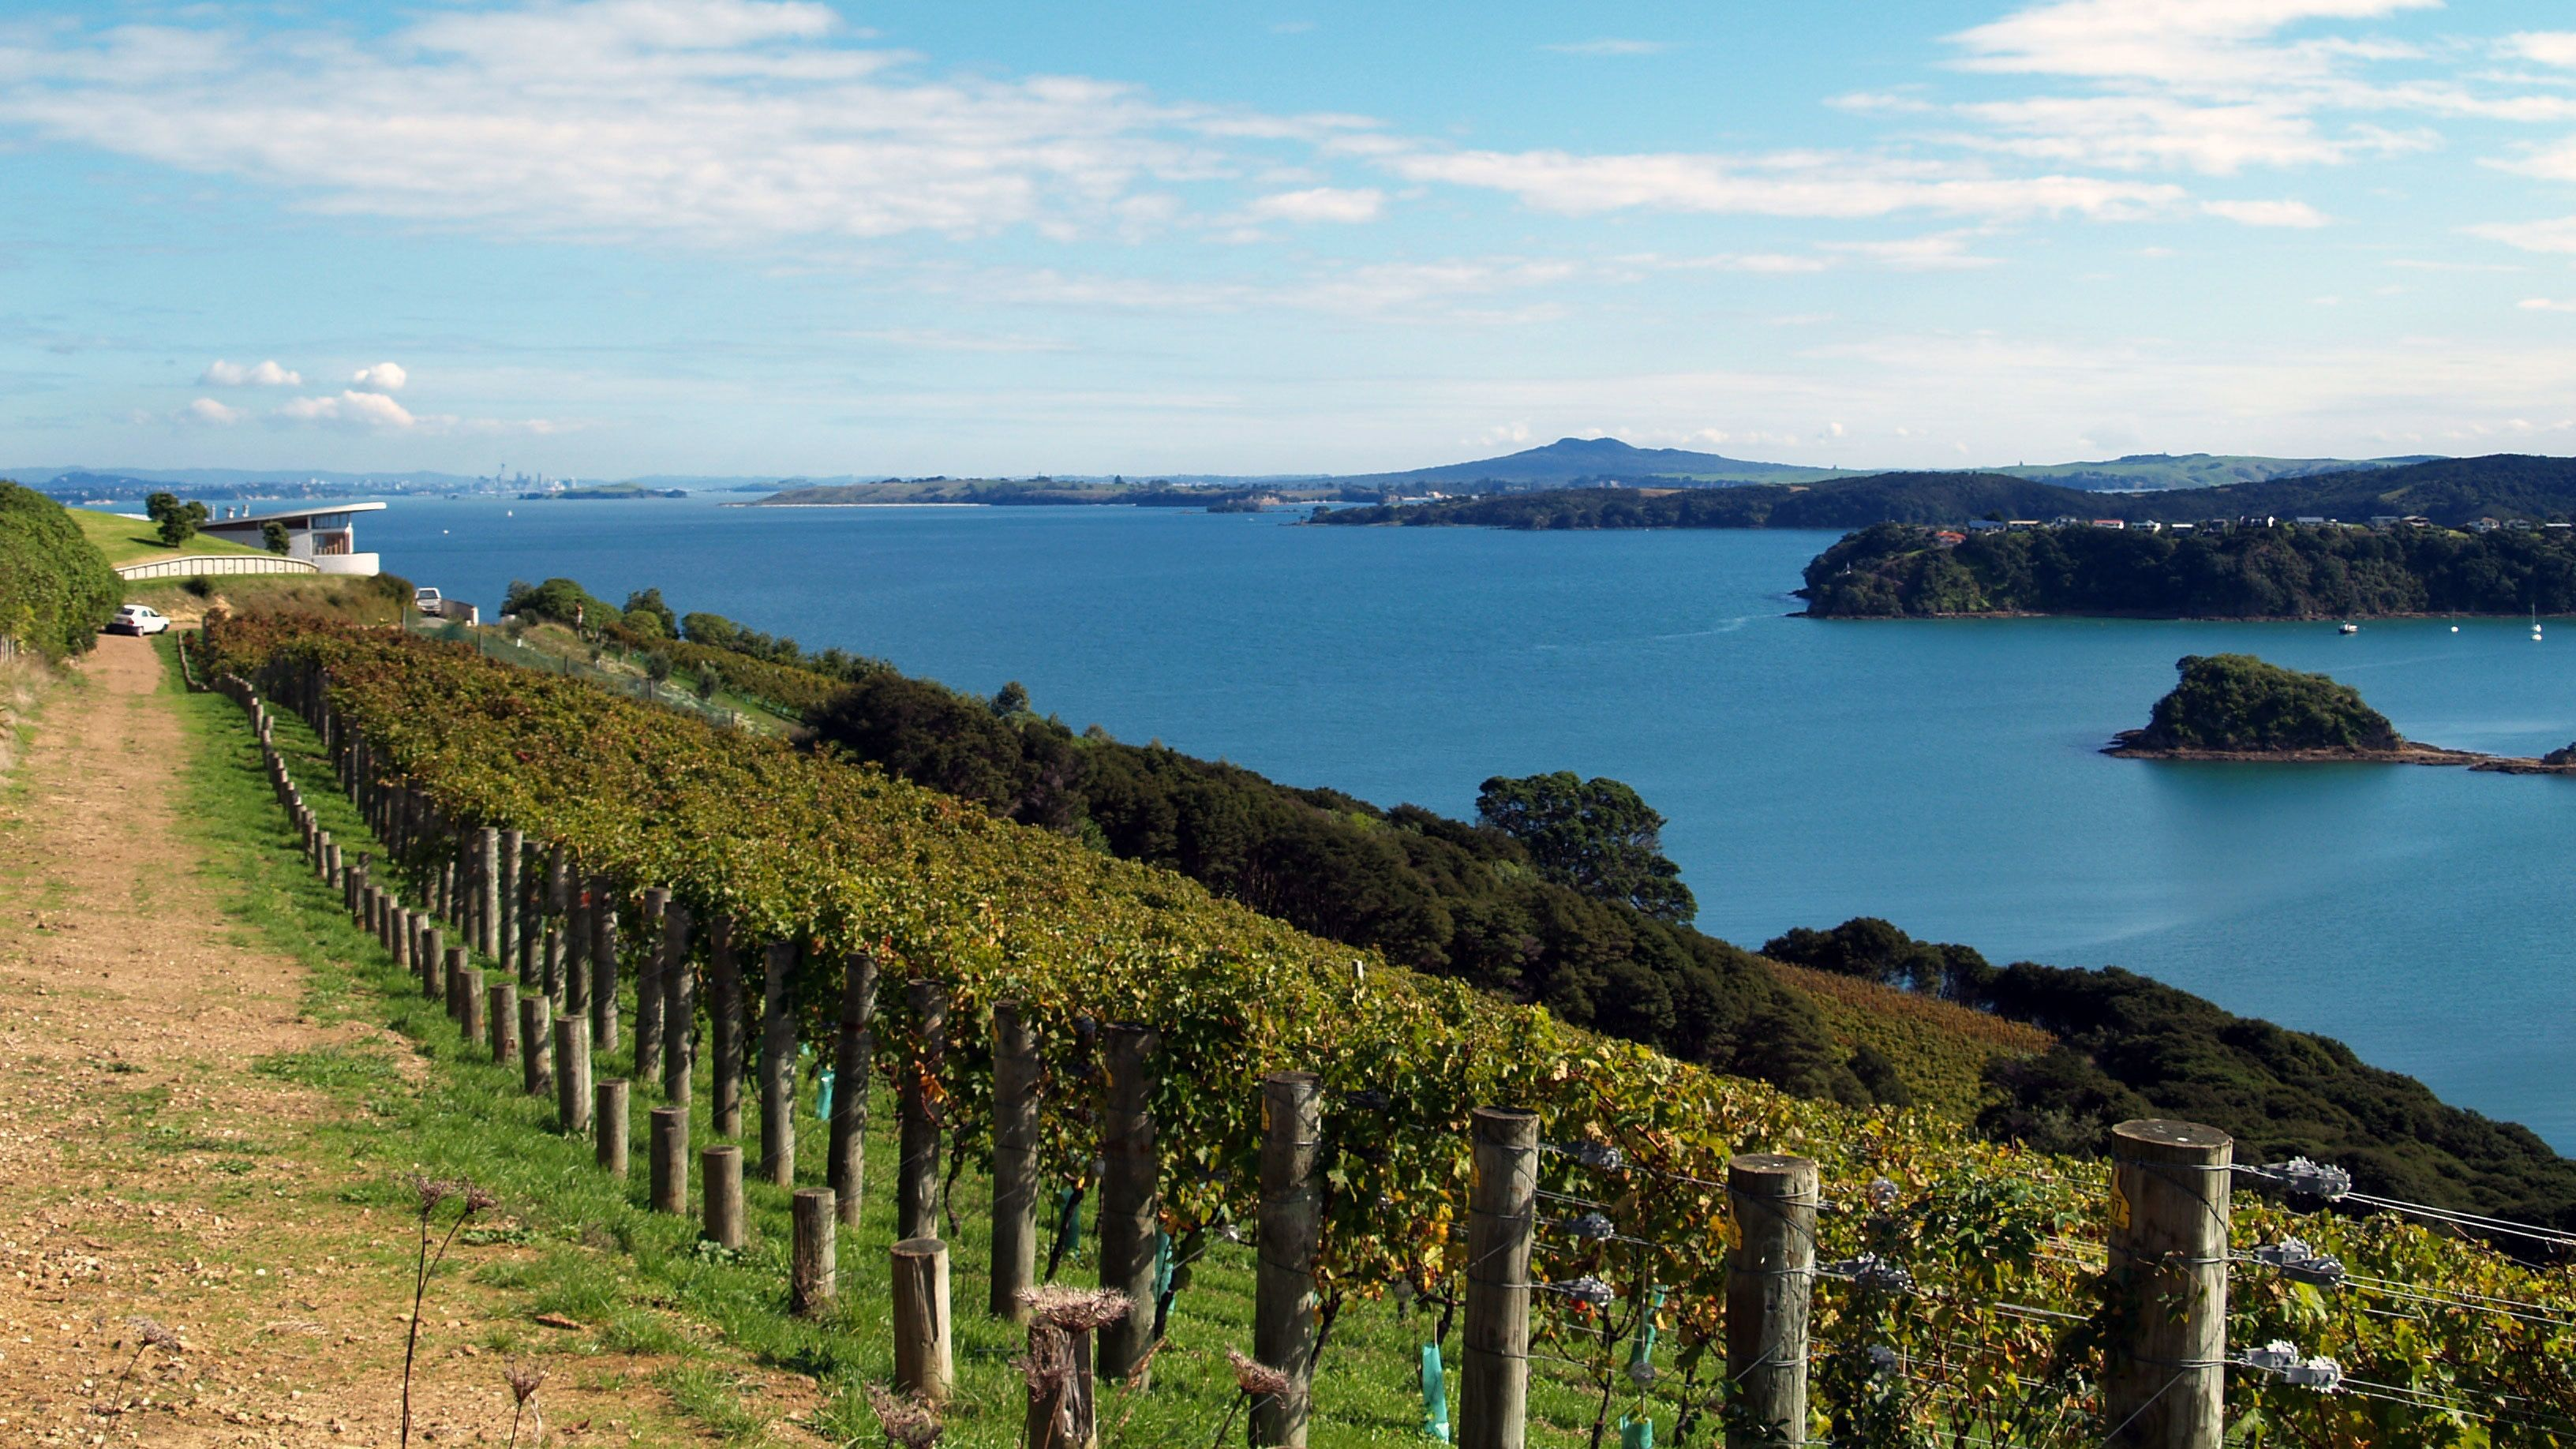 Vineyard along the coast of Waiheka Island